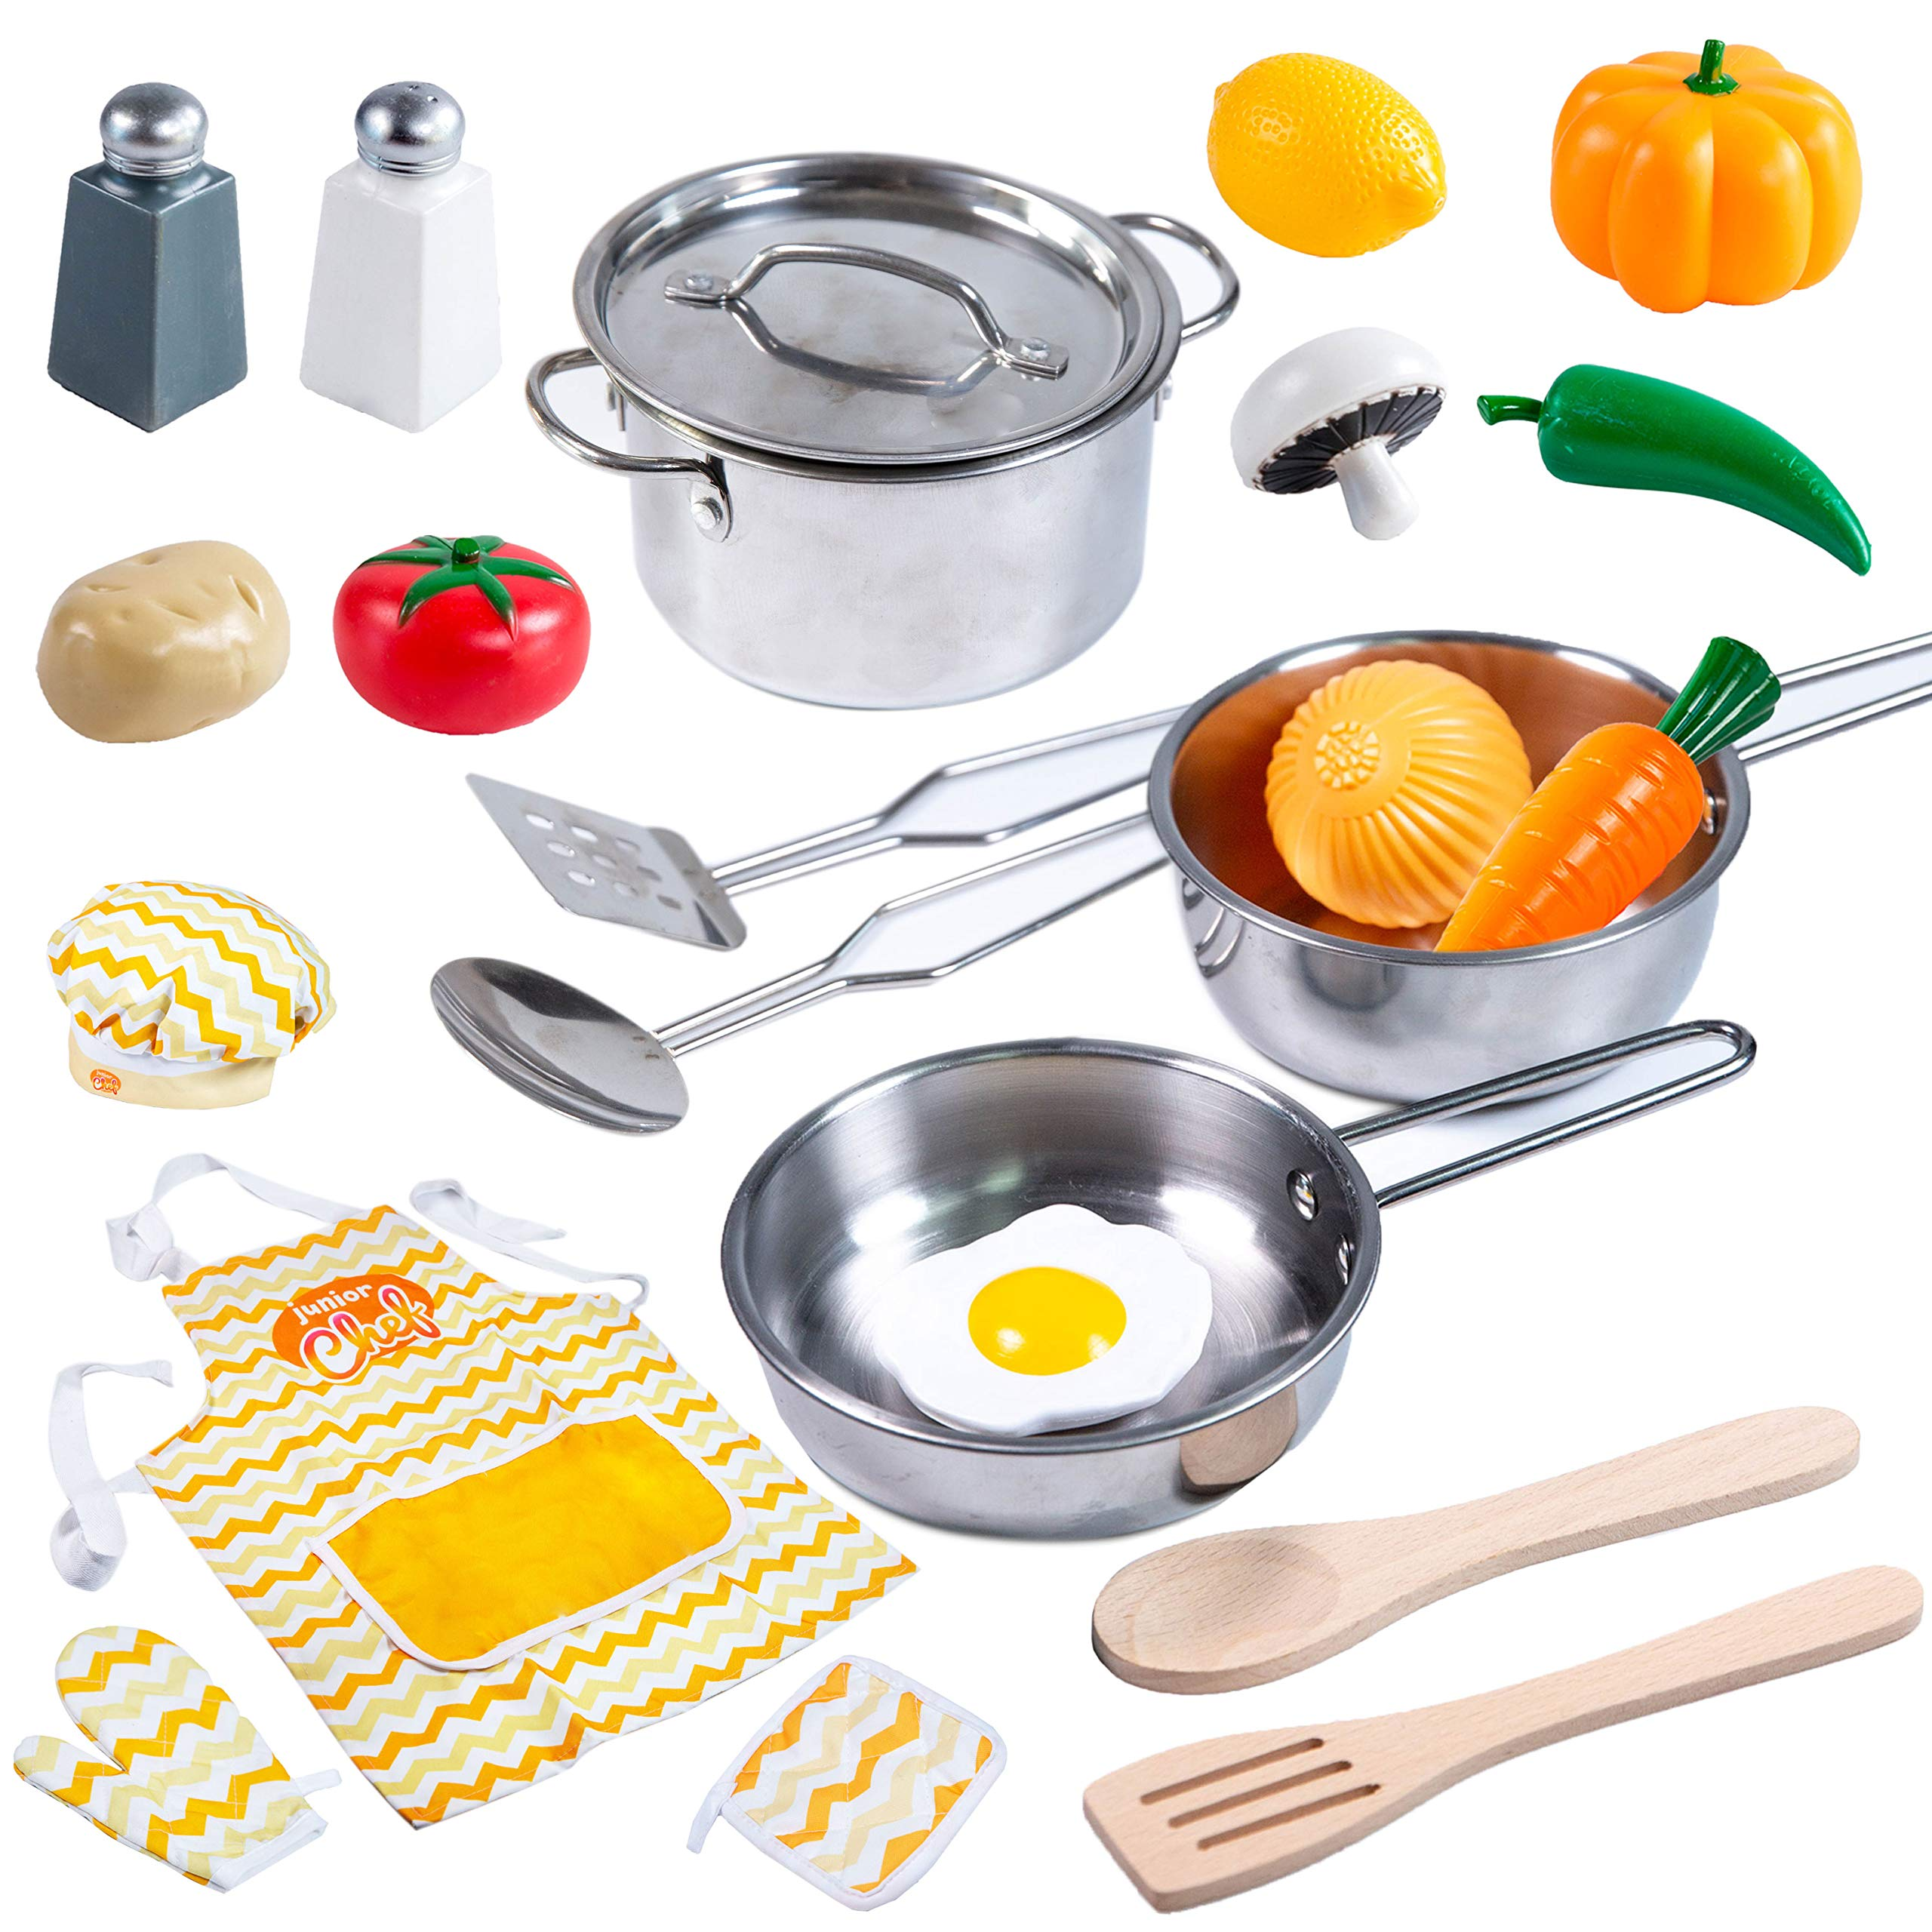 Kitchen Pretend Play Accessories Toys with Stainless Steel Cookware Pots and Pans Set, Cooking Utensils, Apron & Chef Hat, and Grocery Play Food for Kids Boys, Toddler and Girls Gifts Learning Tool. by JOYIN (Image #1)